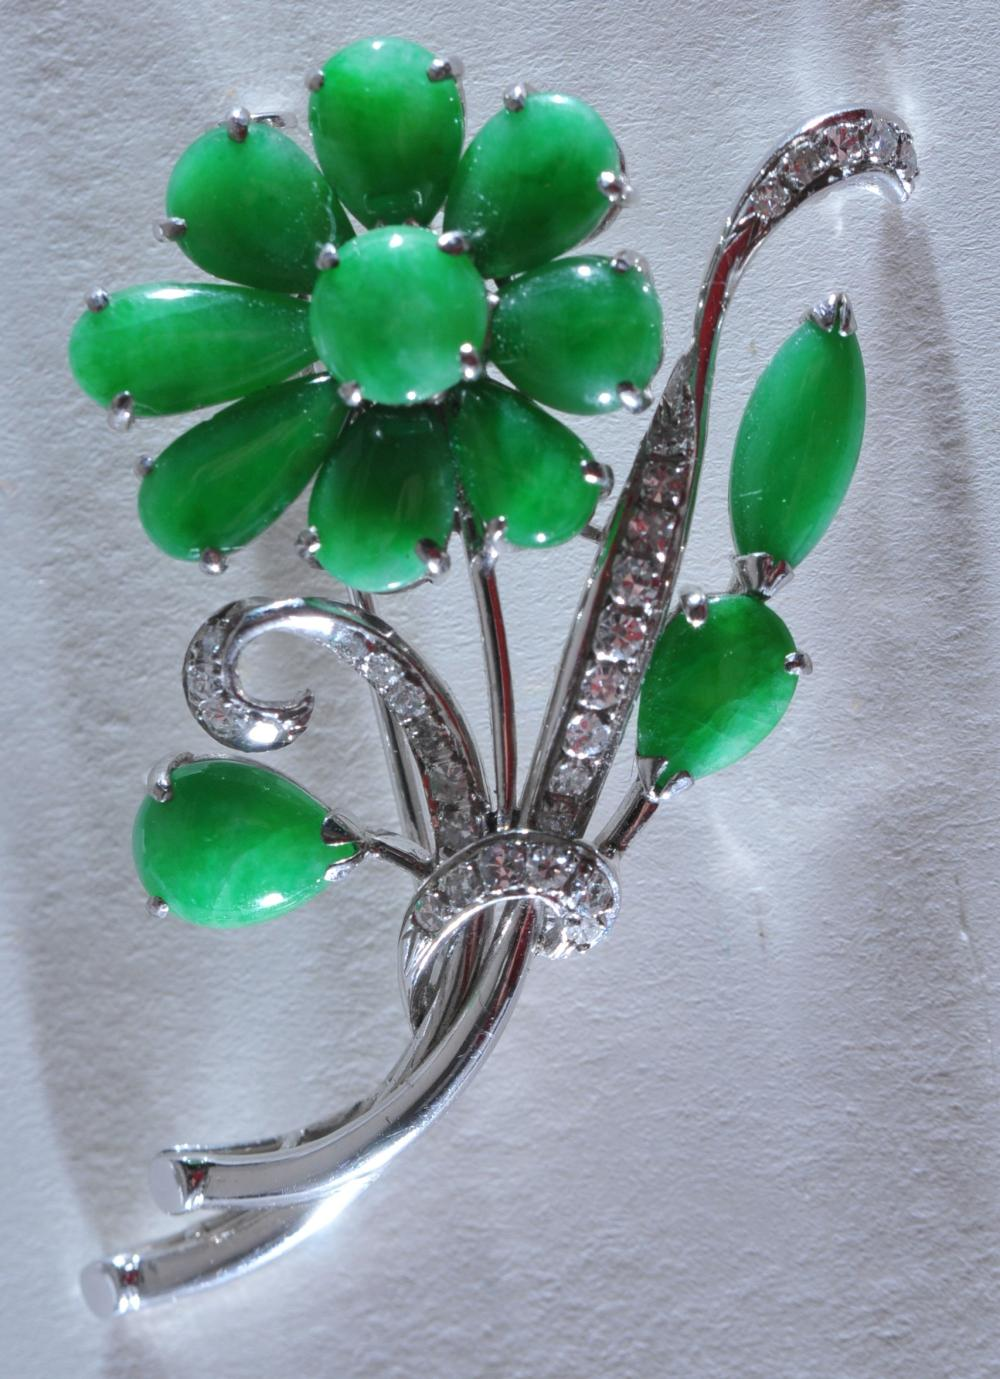 Lot 152: 14 karat white gold diamond and jadeite mounted flower form pin. Good quality and color jade stones. Approx. 27 mounted diamonds. 10.2 grams.